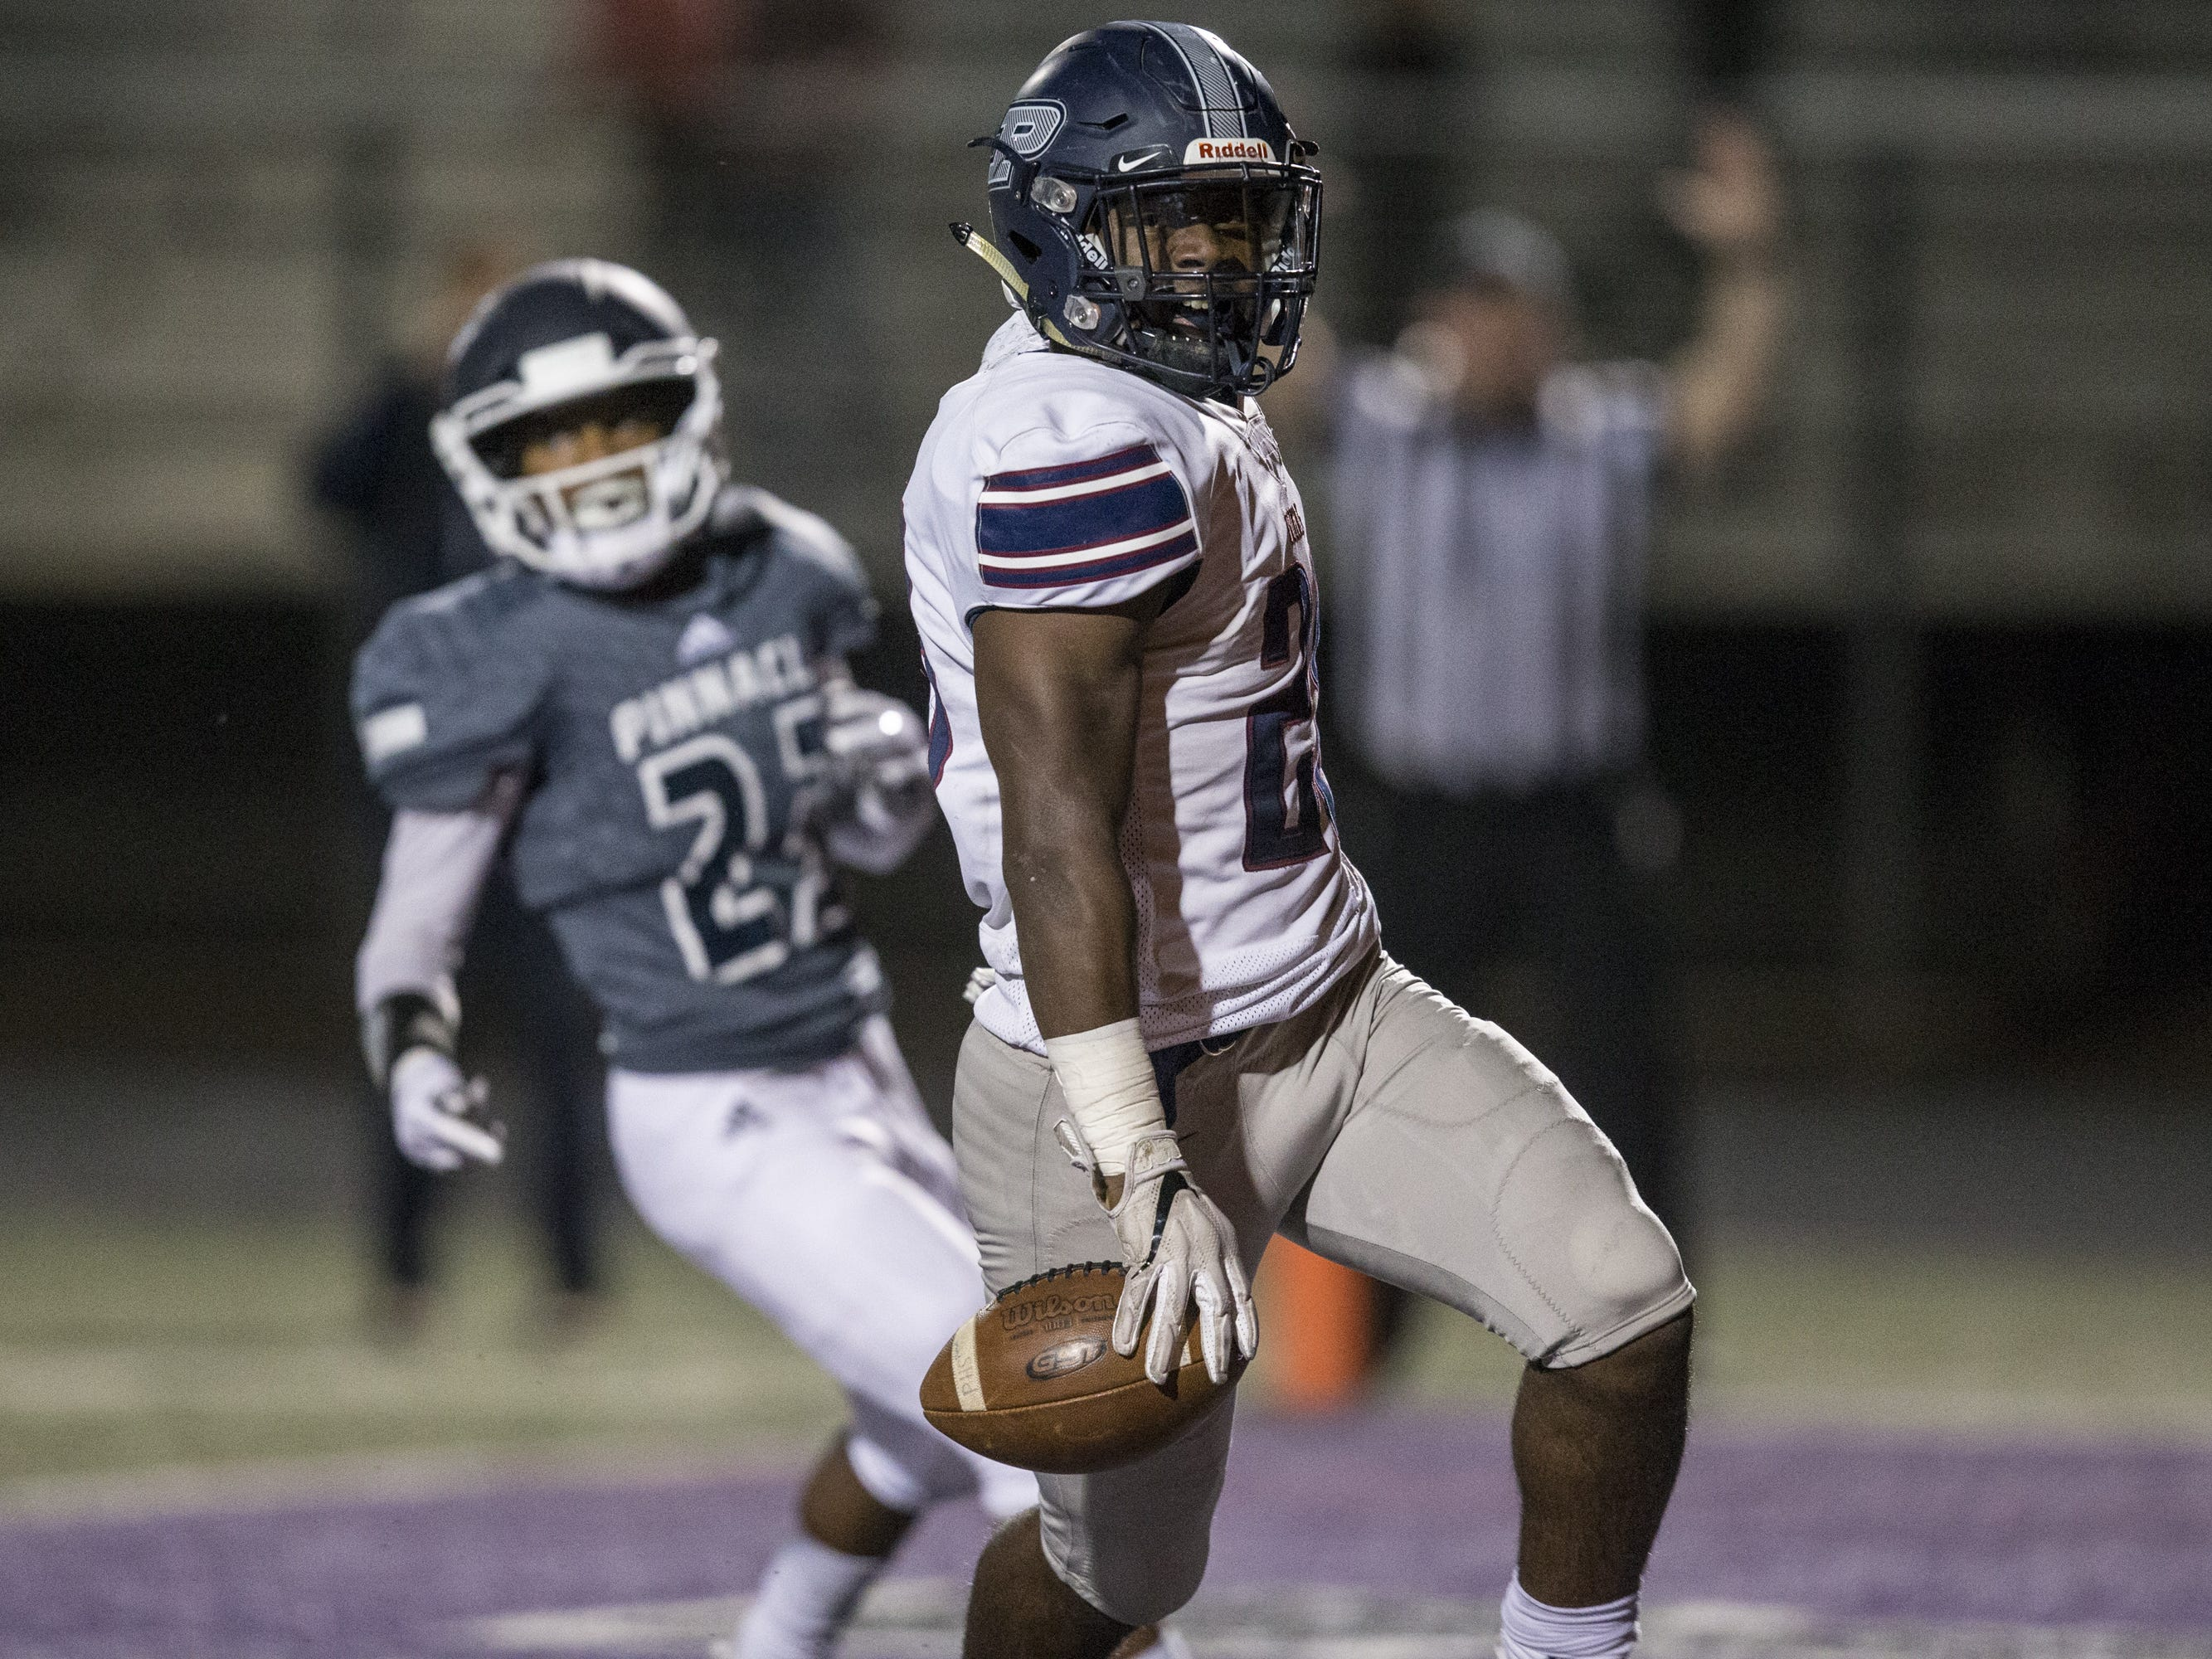 Perry's Jalen Young rushes for a touchdown against Pinnacle in the first half on Friday, Nov. 16, 2018, at North Canyon High School in Phoenix.  #azhsb